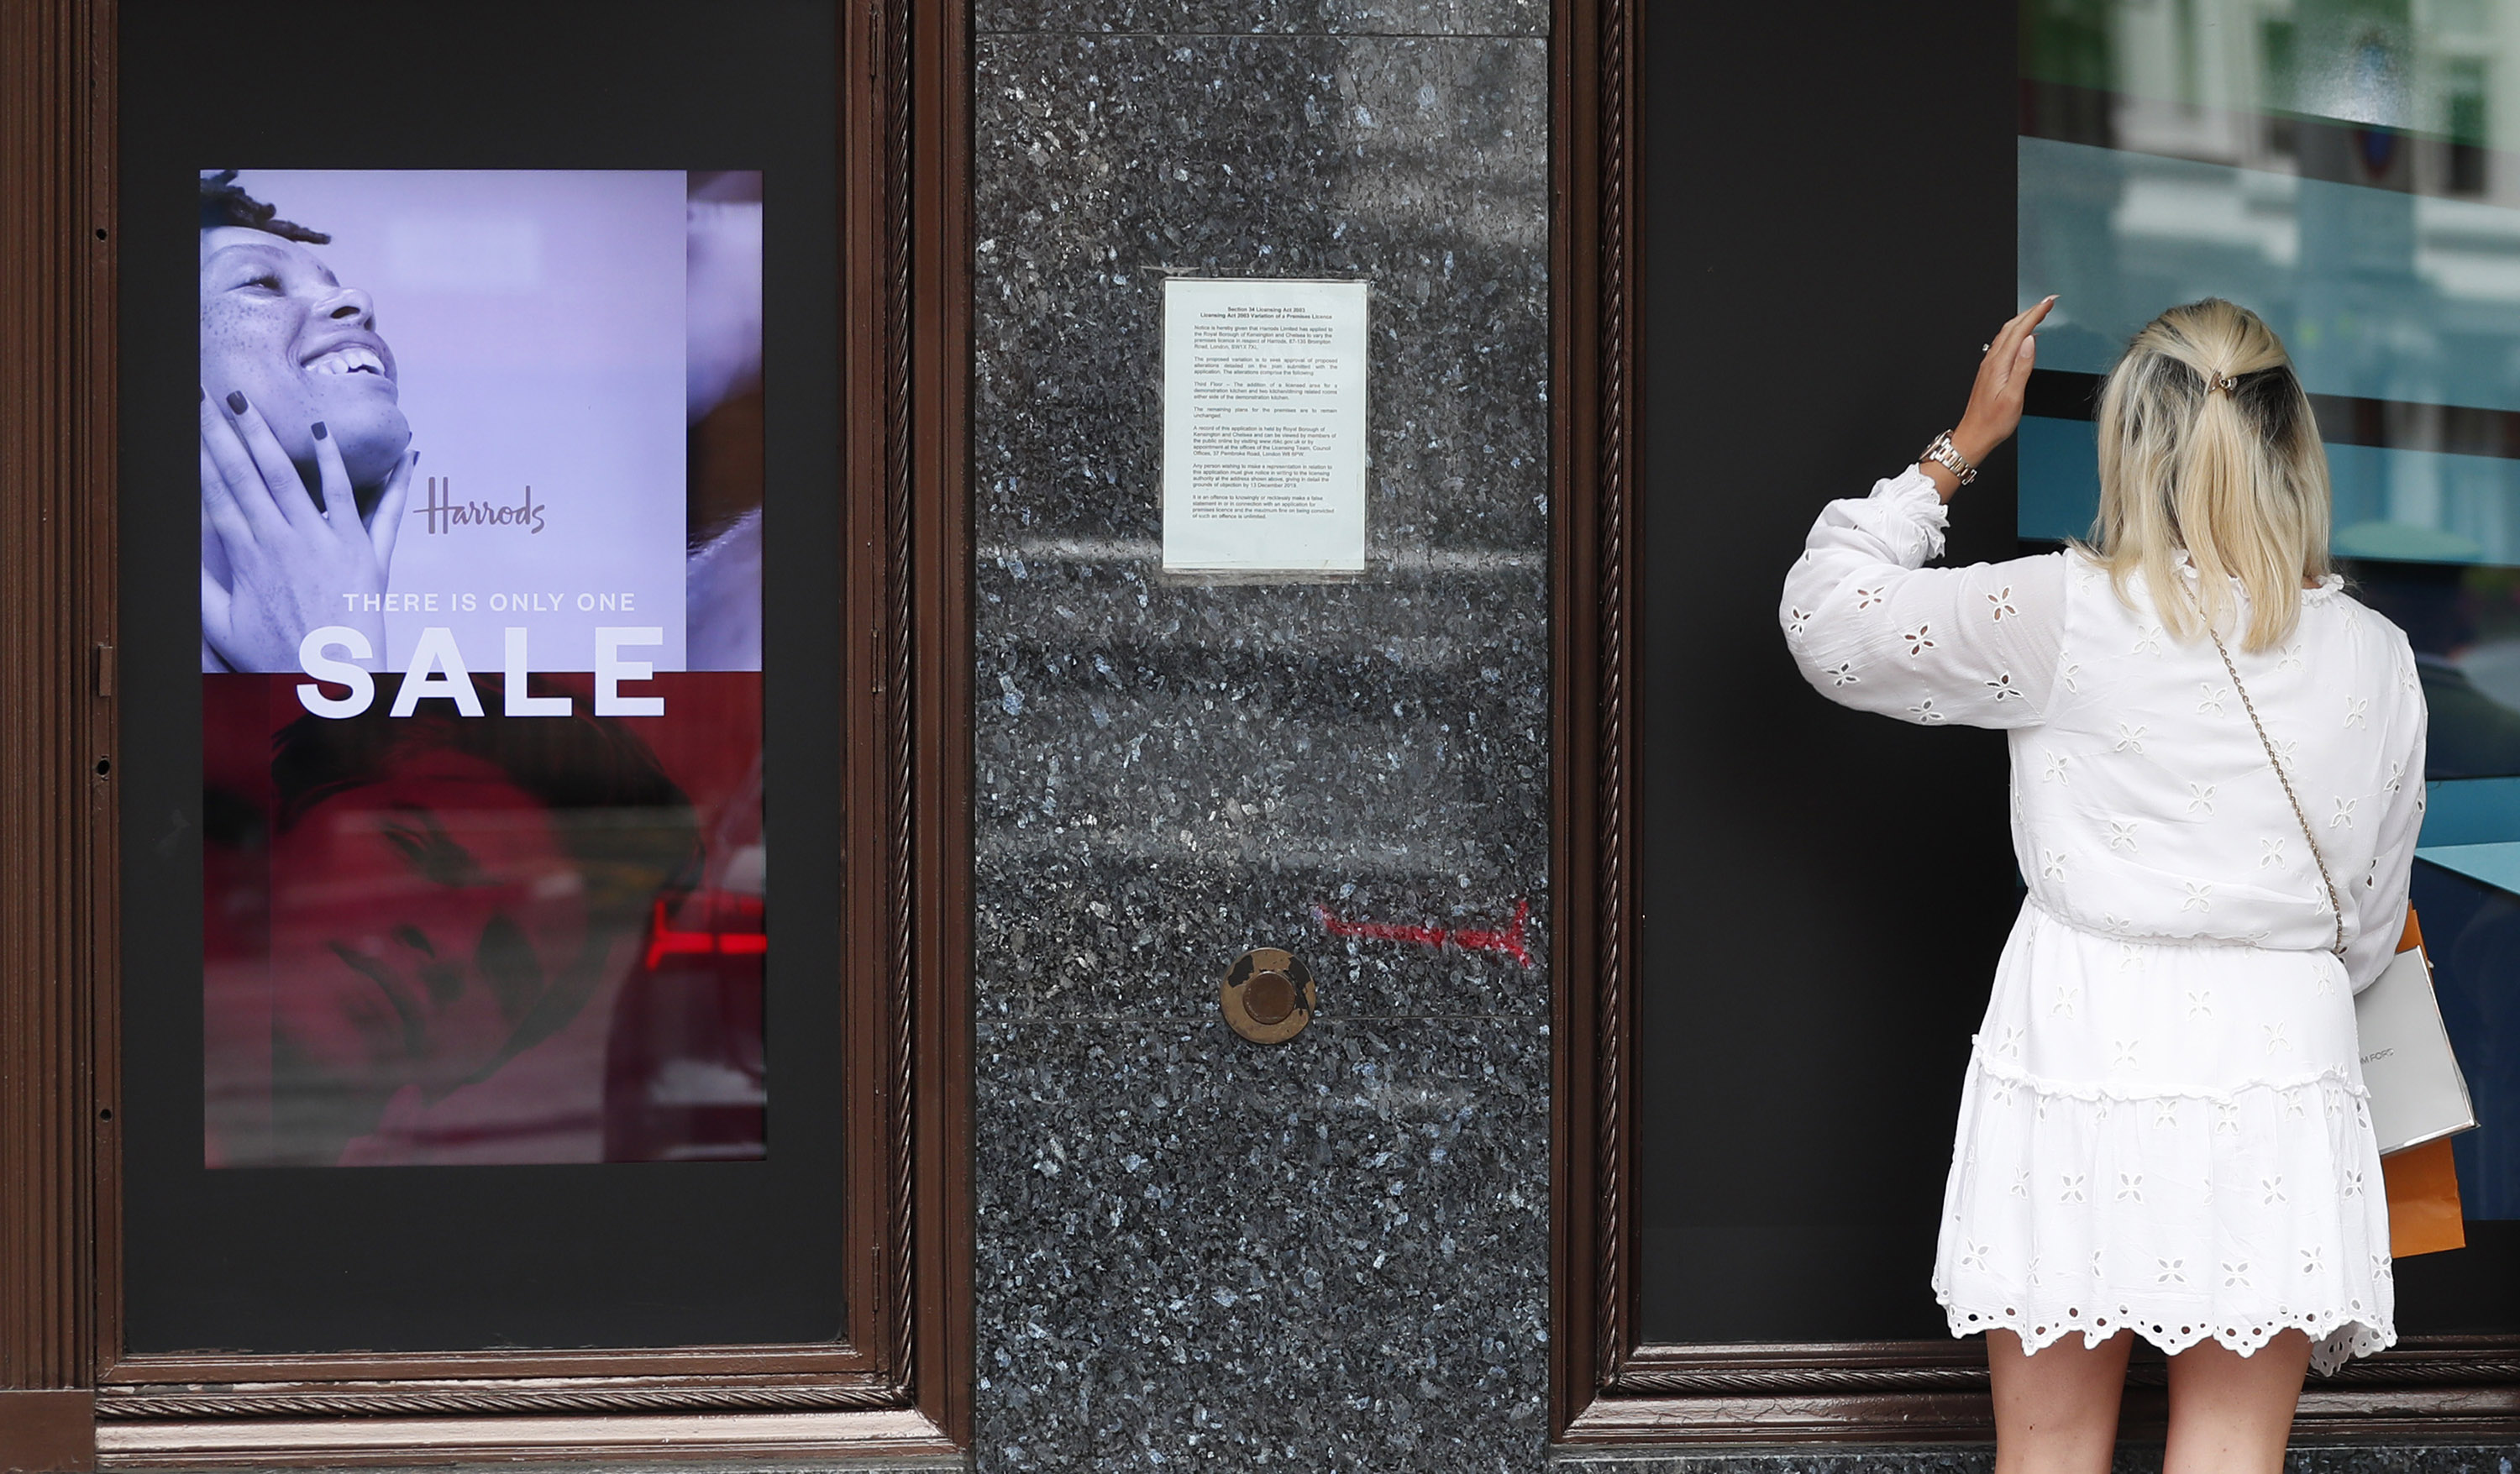 UK sheds 730,000 jobs during the pandemic and wages are falling